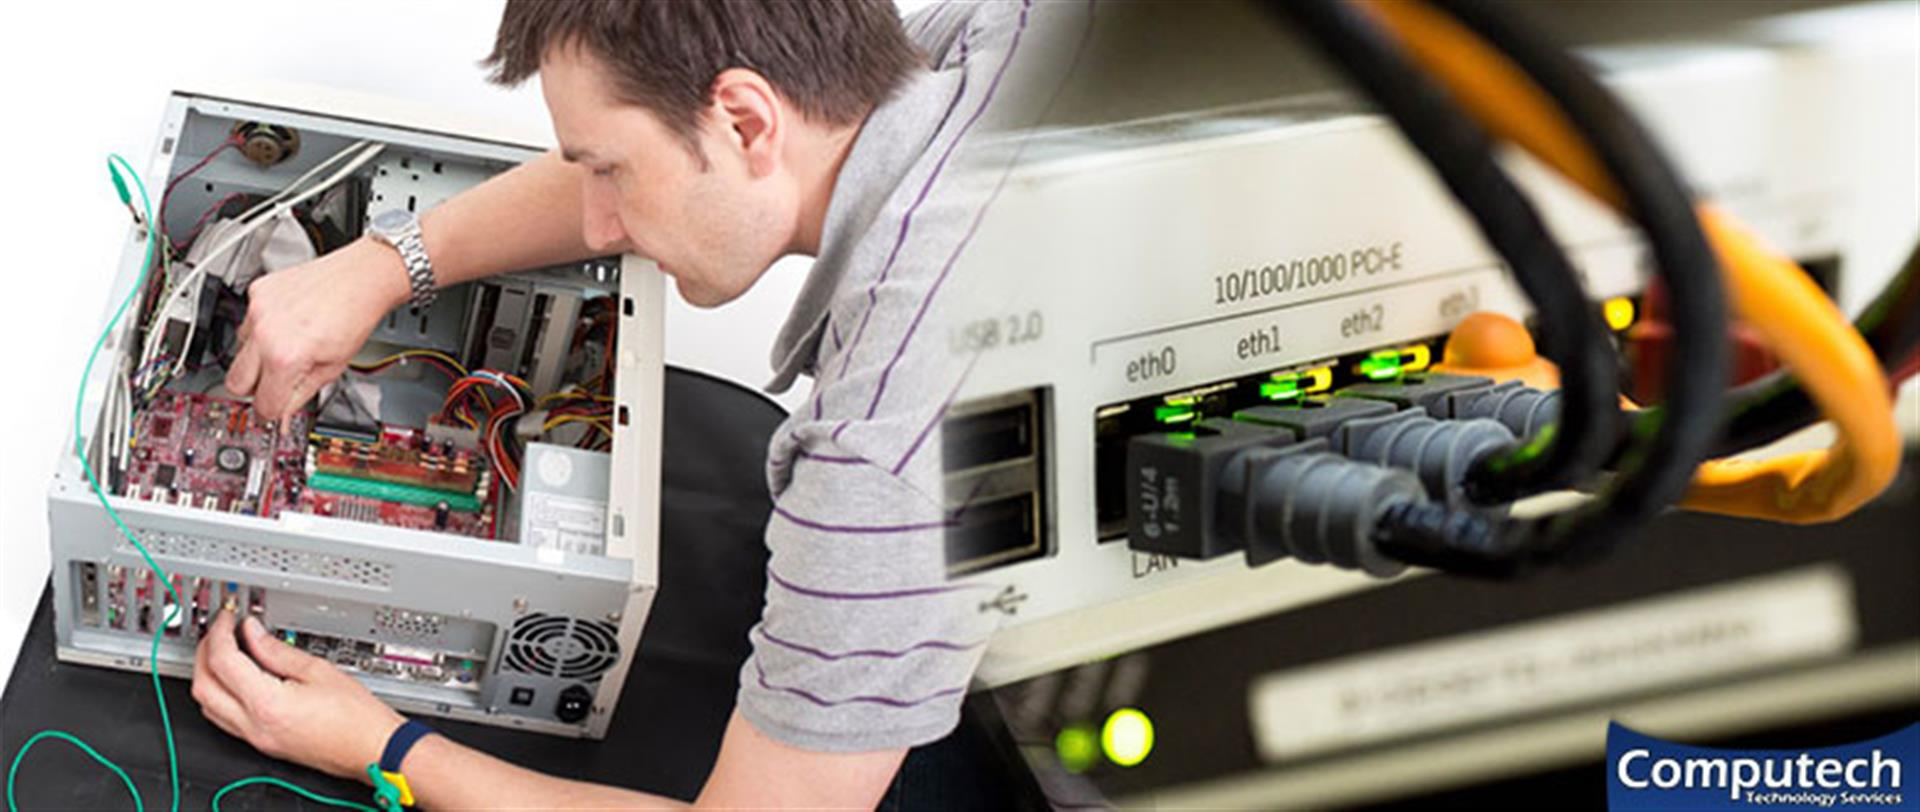 Ashland City Tennessee Onsite Computer & Printer Repair, Network, Voice & Data Cabling Services